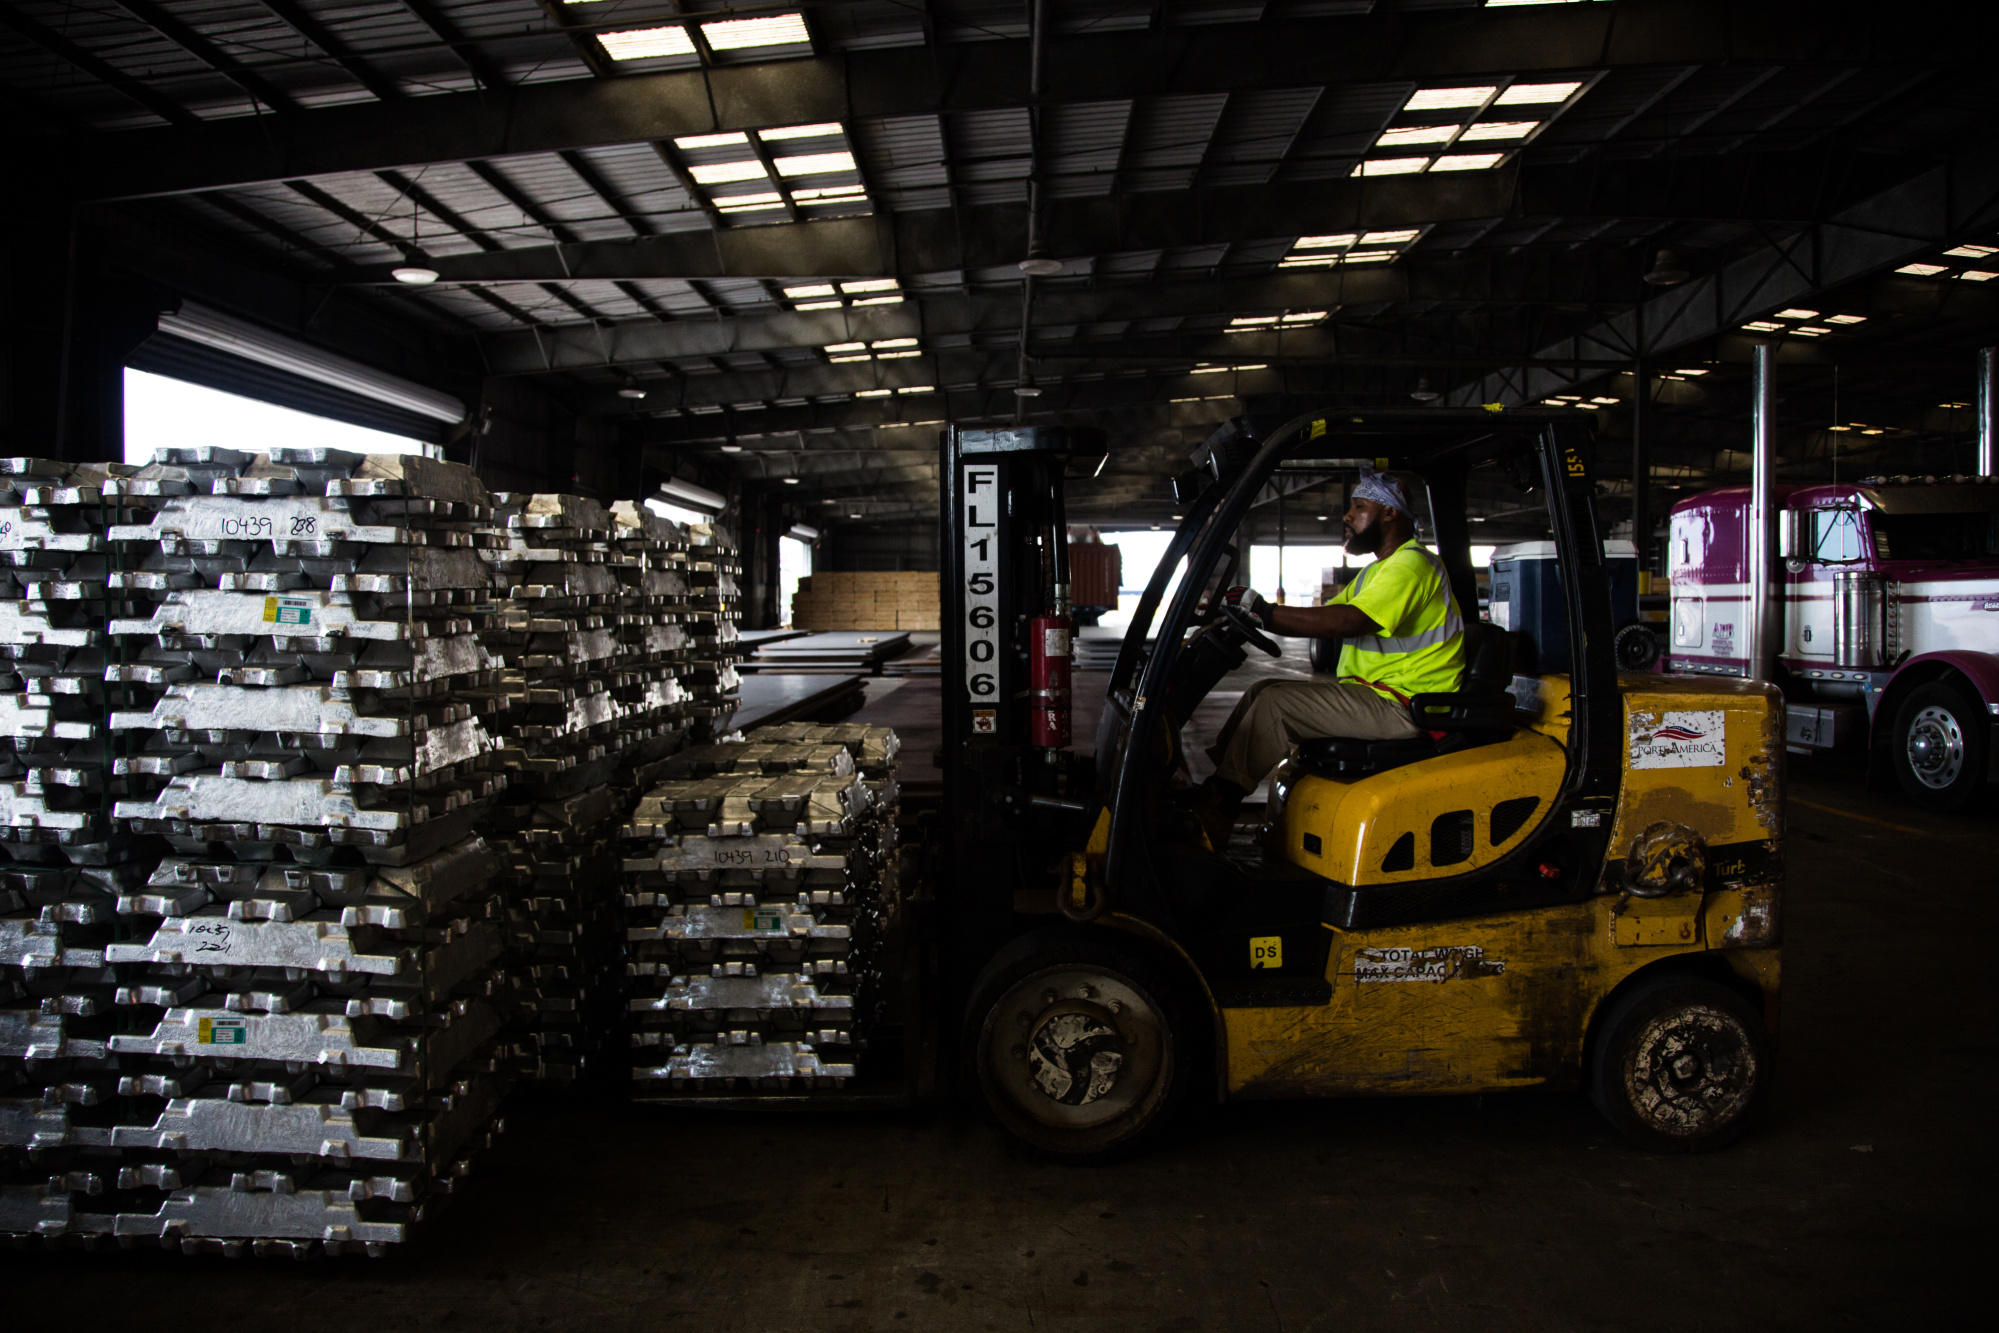 A worker uses a forklift to move aluminum ingots in a warehouse at the Port of New Orleans in New Orleans, Louisiana, U.S., on Tuesday, Sept. 18, 2018.